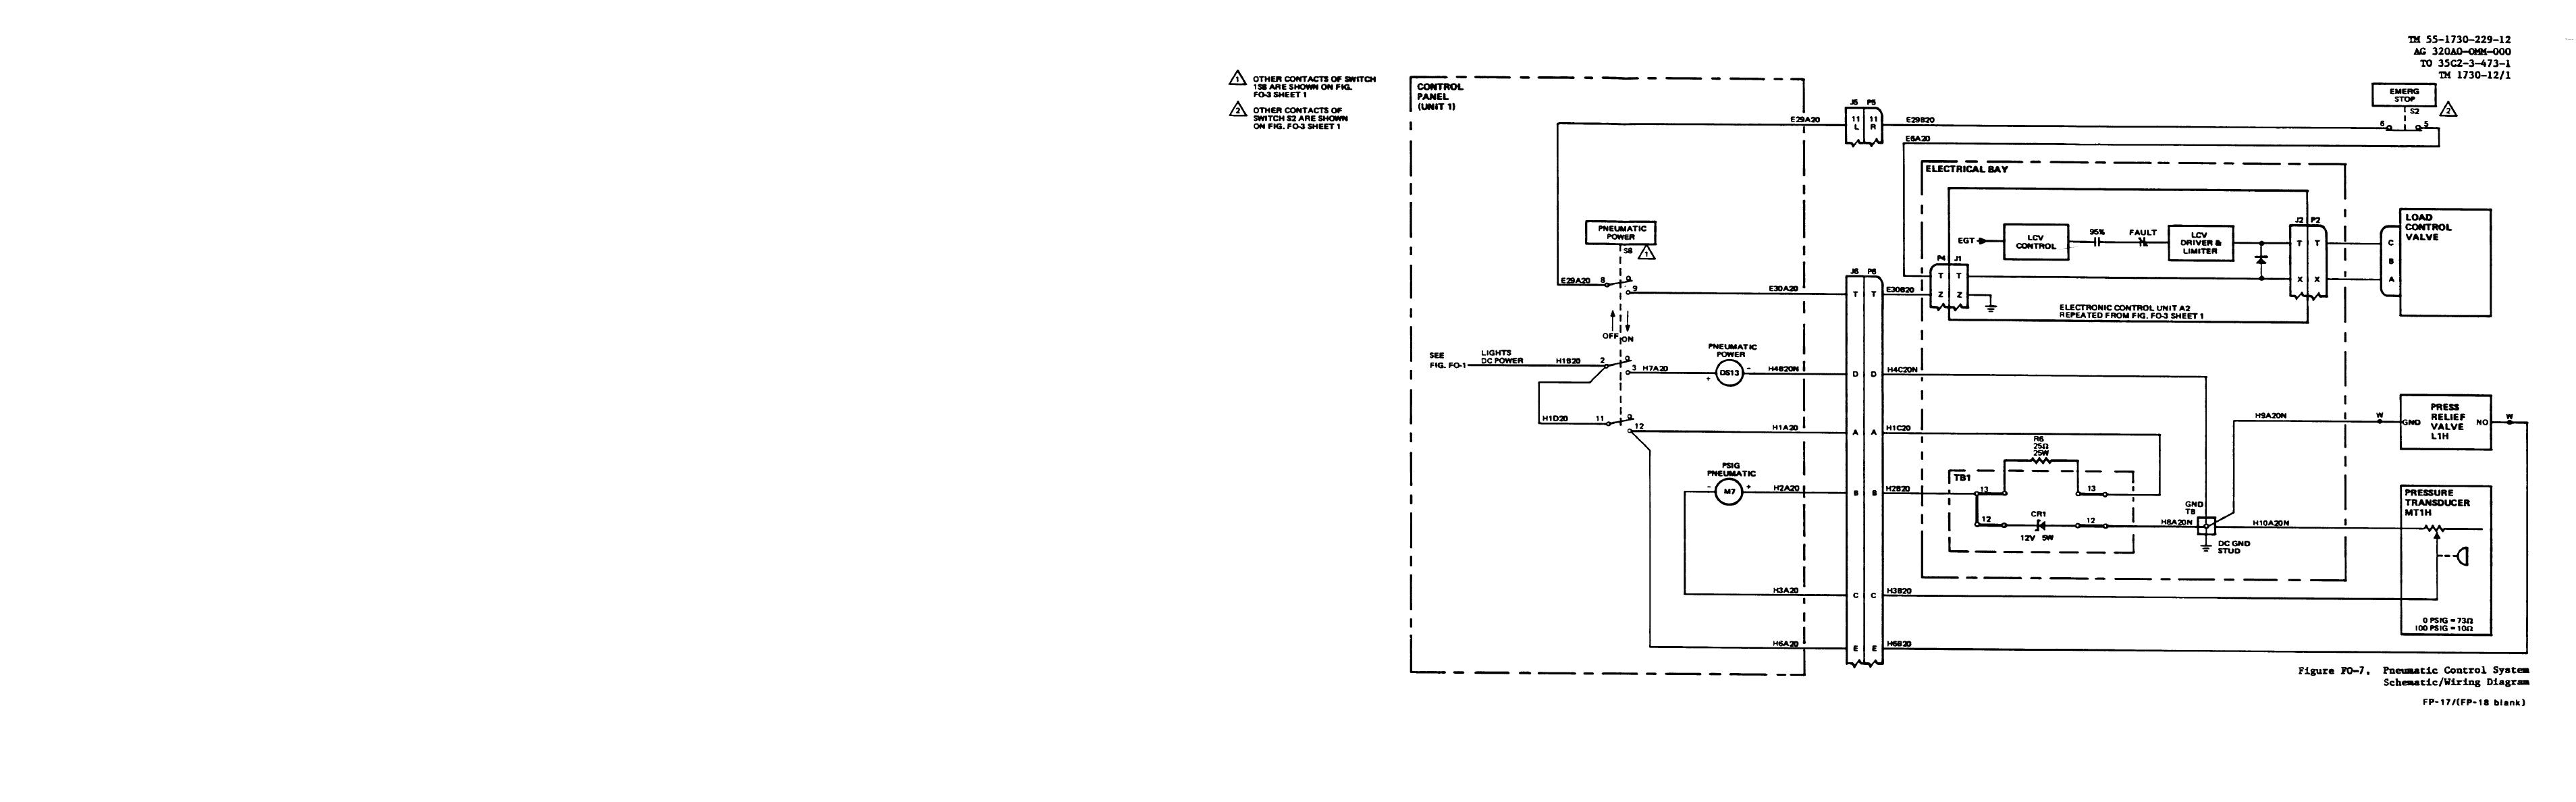 TM 55 1730 229 120550im figure fo 7 pneumatic control system schematic wiring diagram wiring diagram for access control system at edmiracle.co